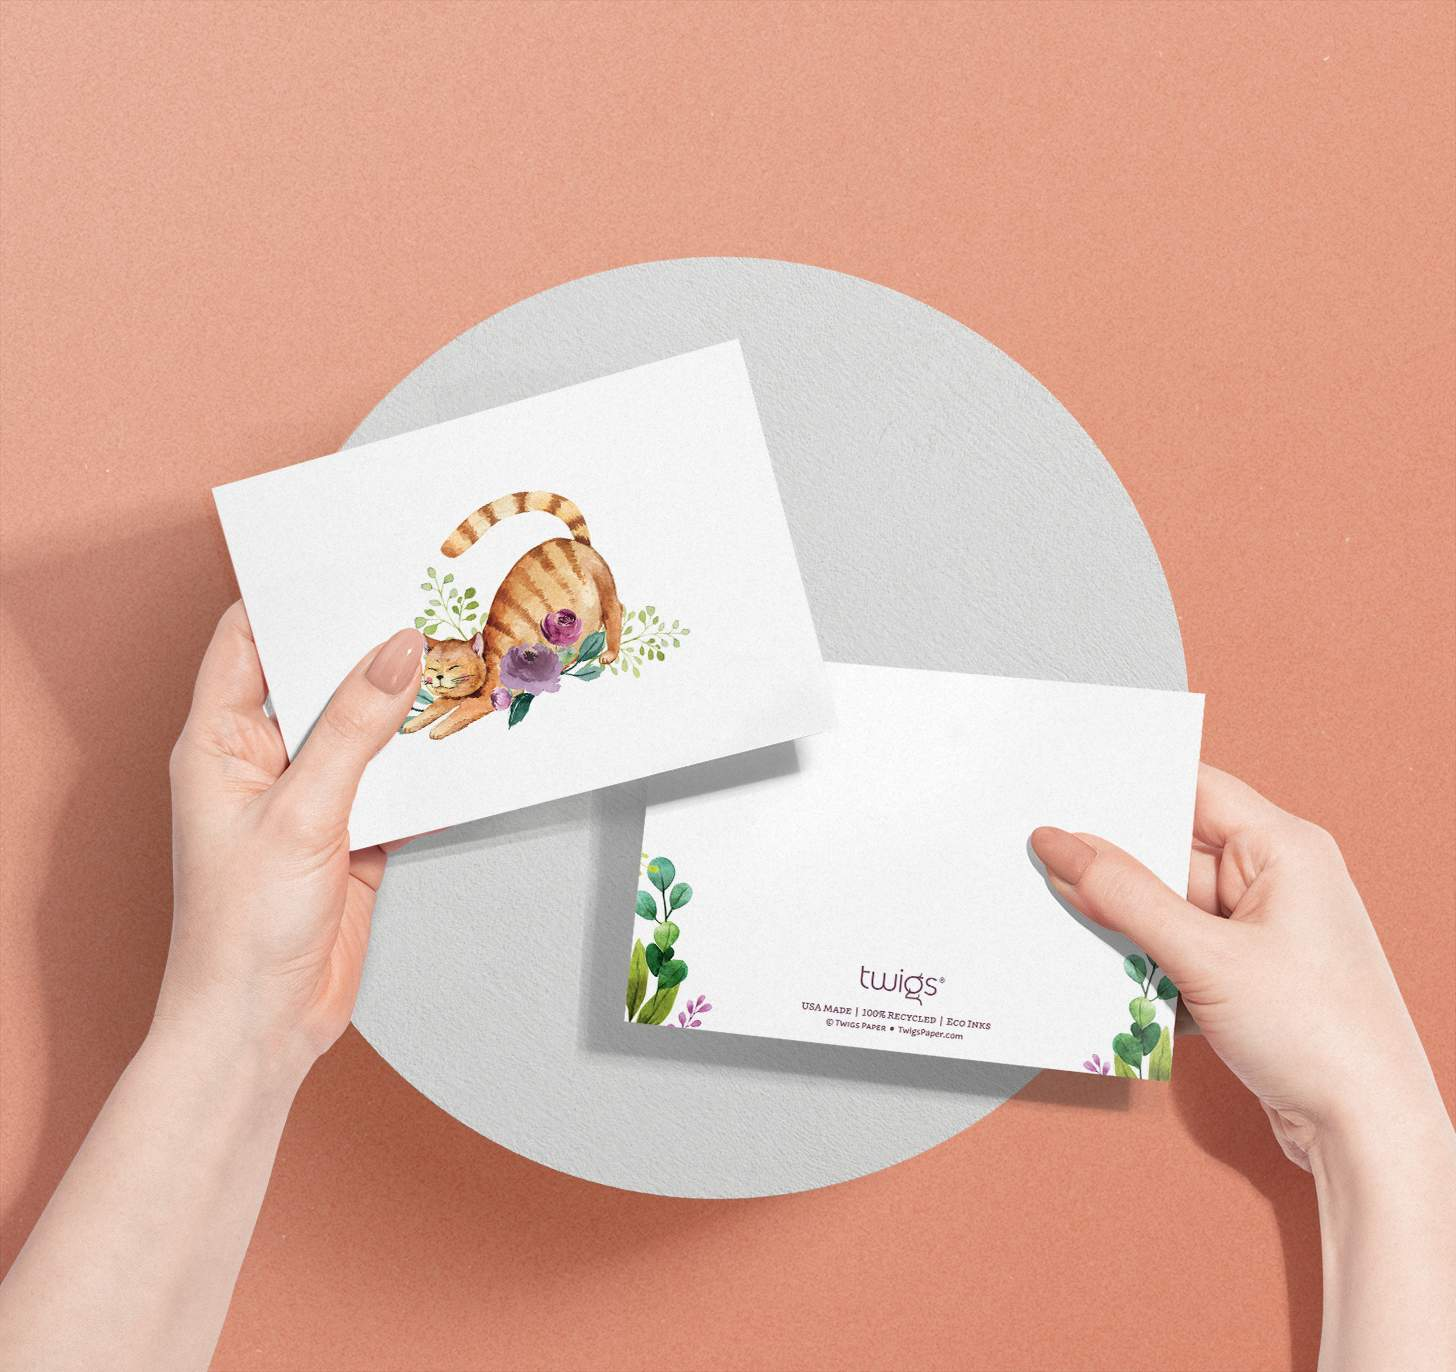 Hands holding Orange striped cat with flowers design card